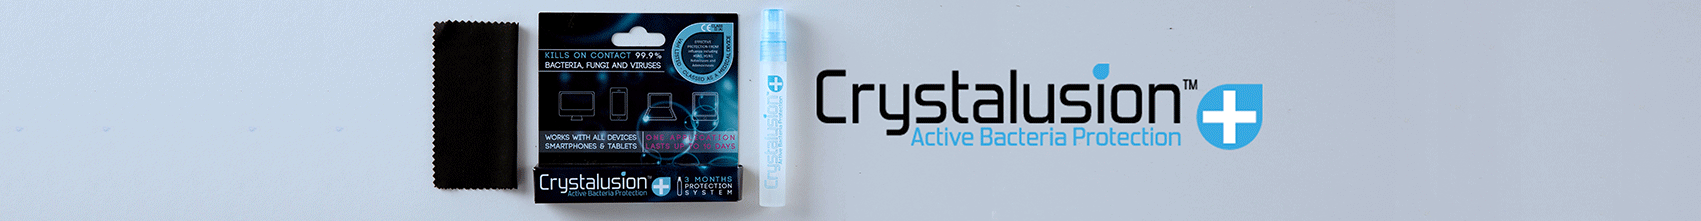 Crystalusion Plus Active Bacteria Protection